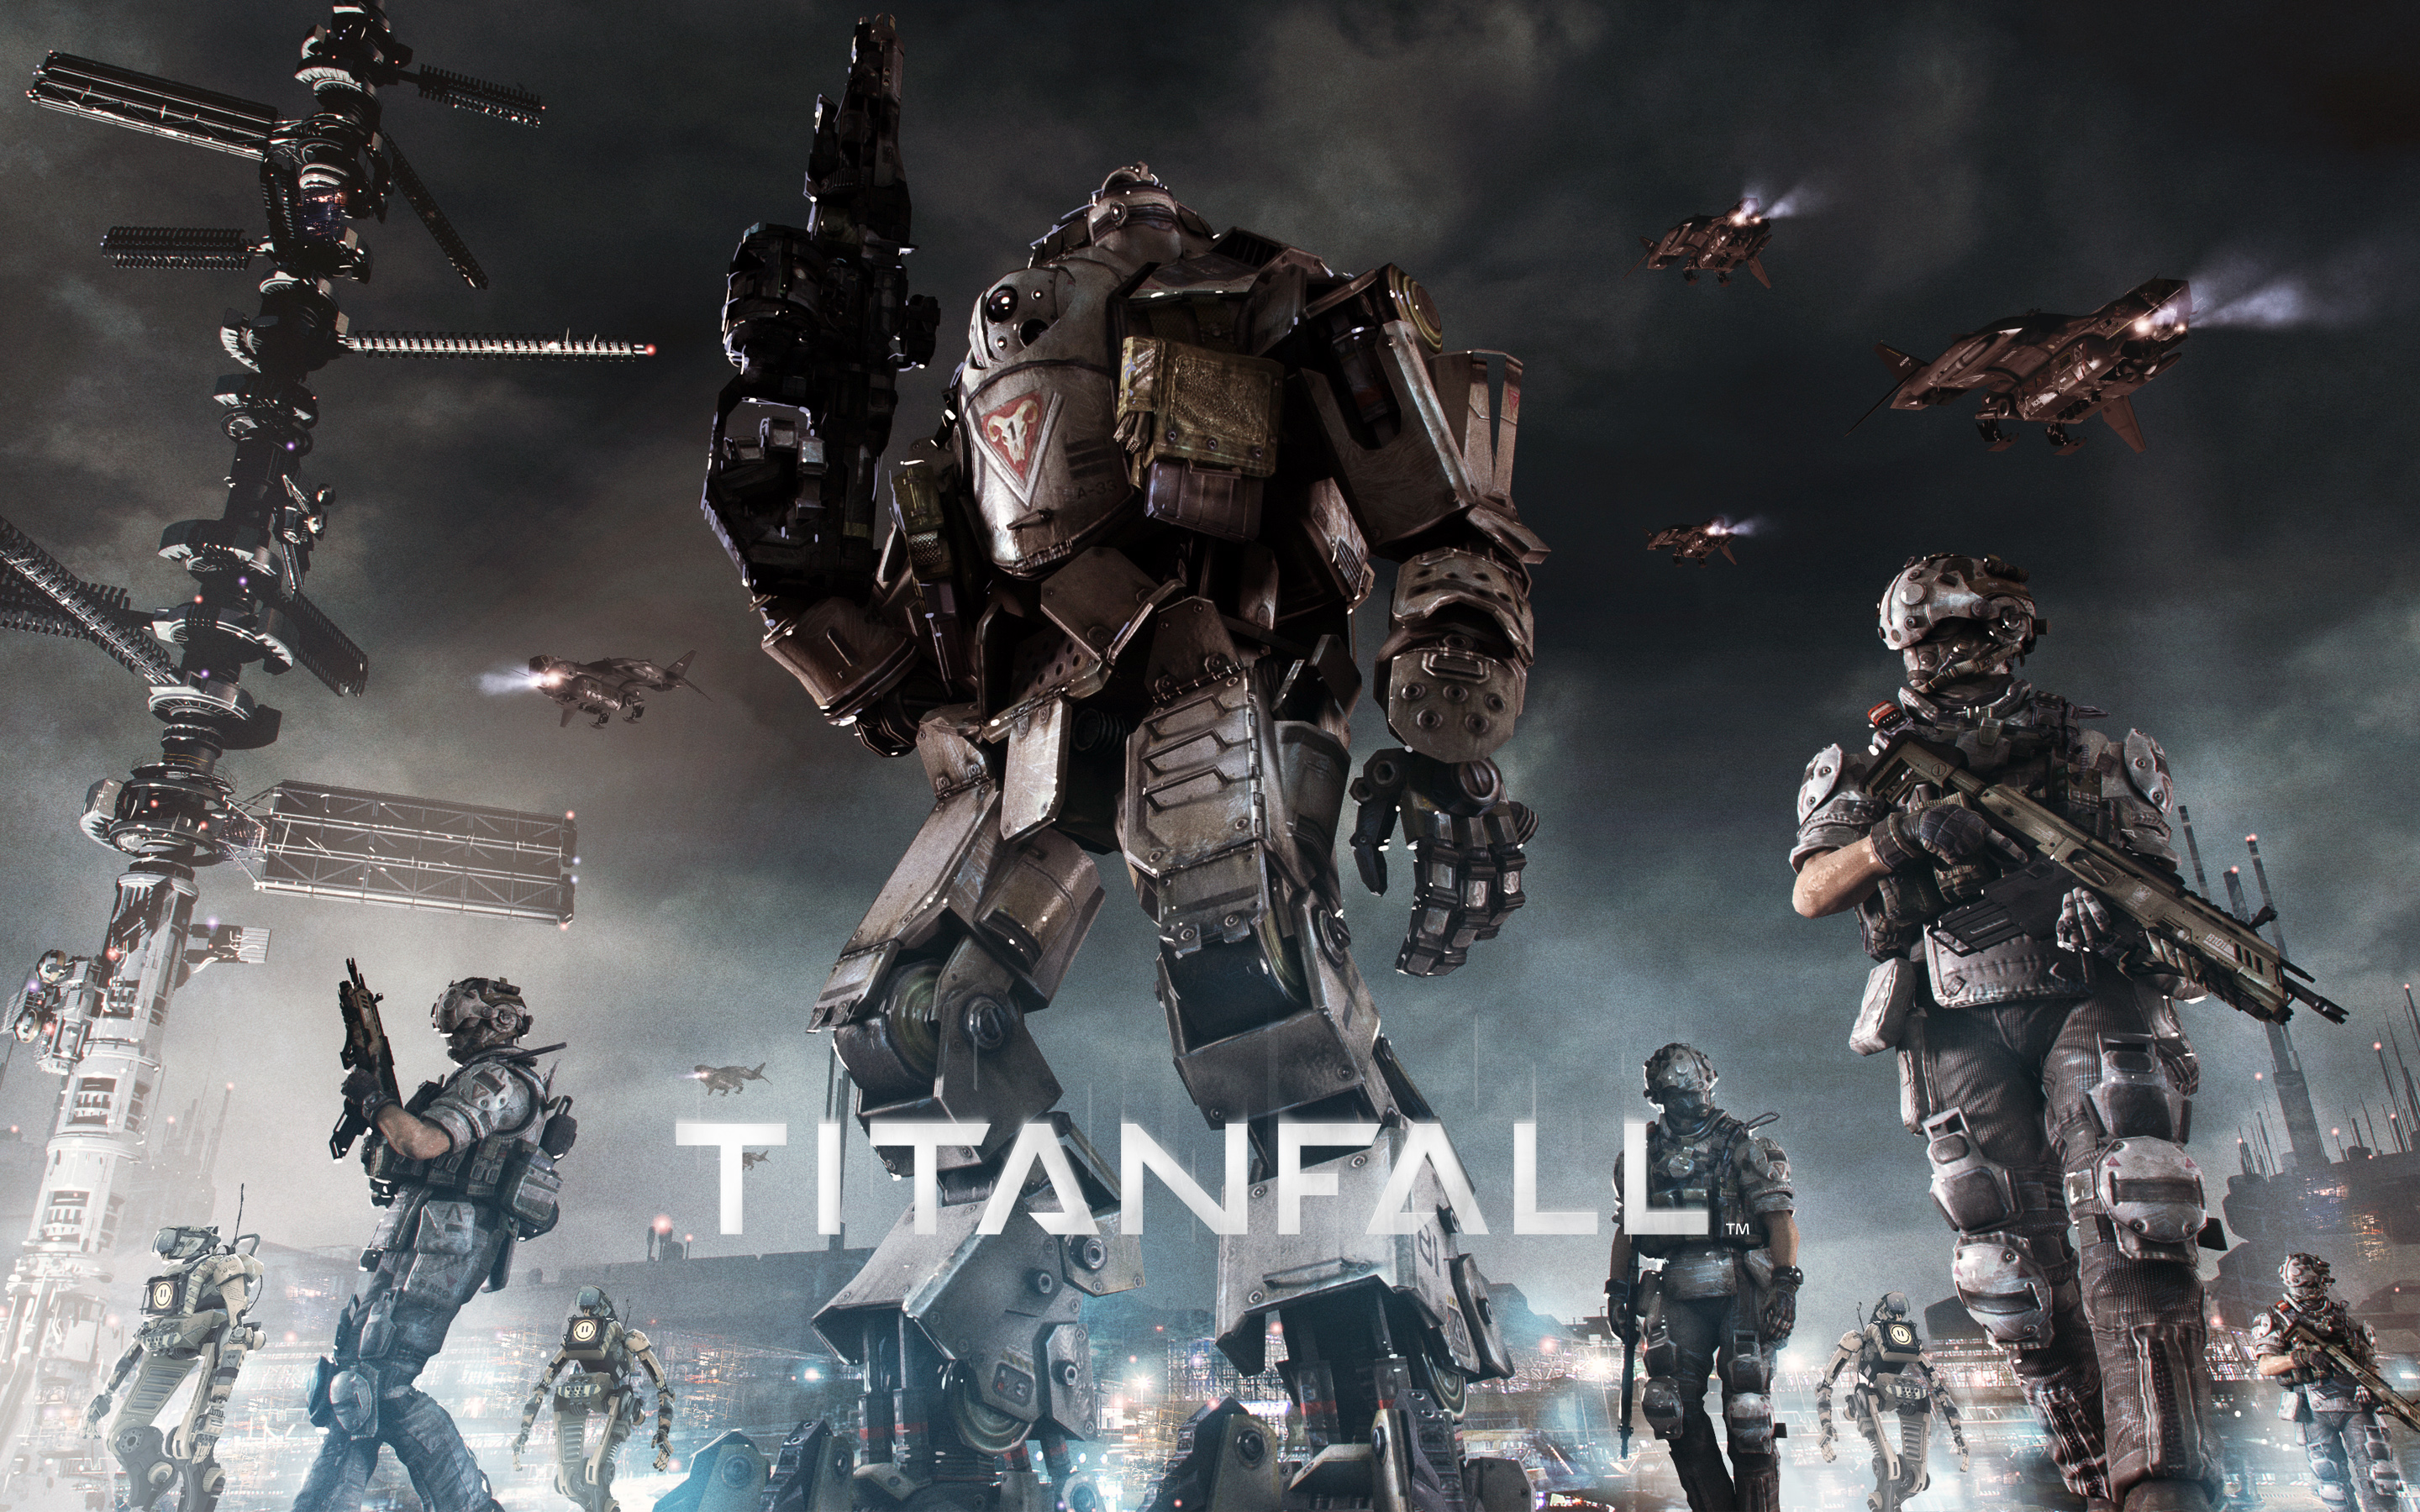 HD Wallpapers Titanfall Game